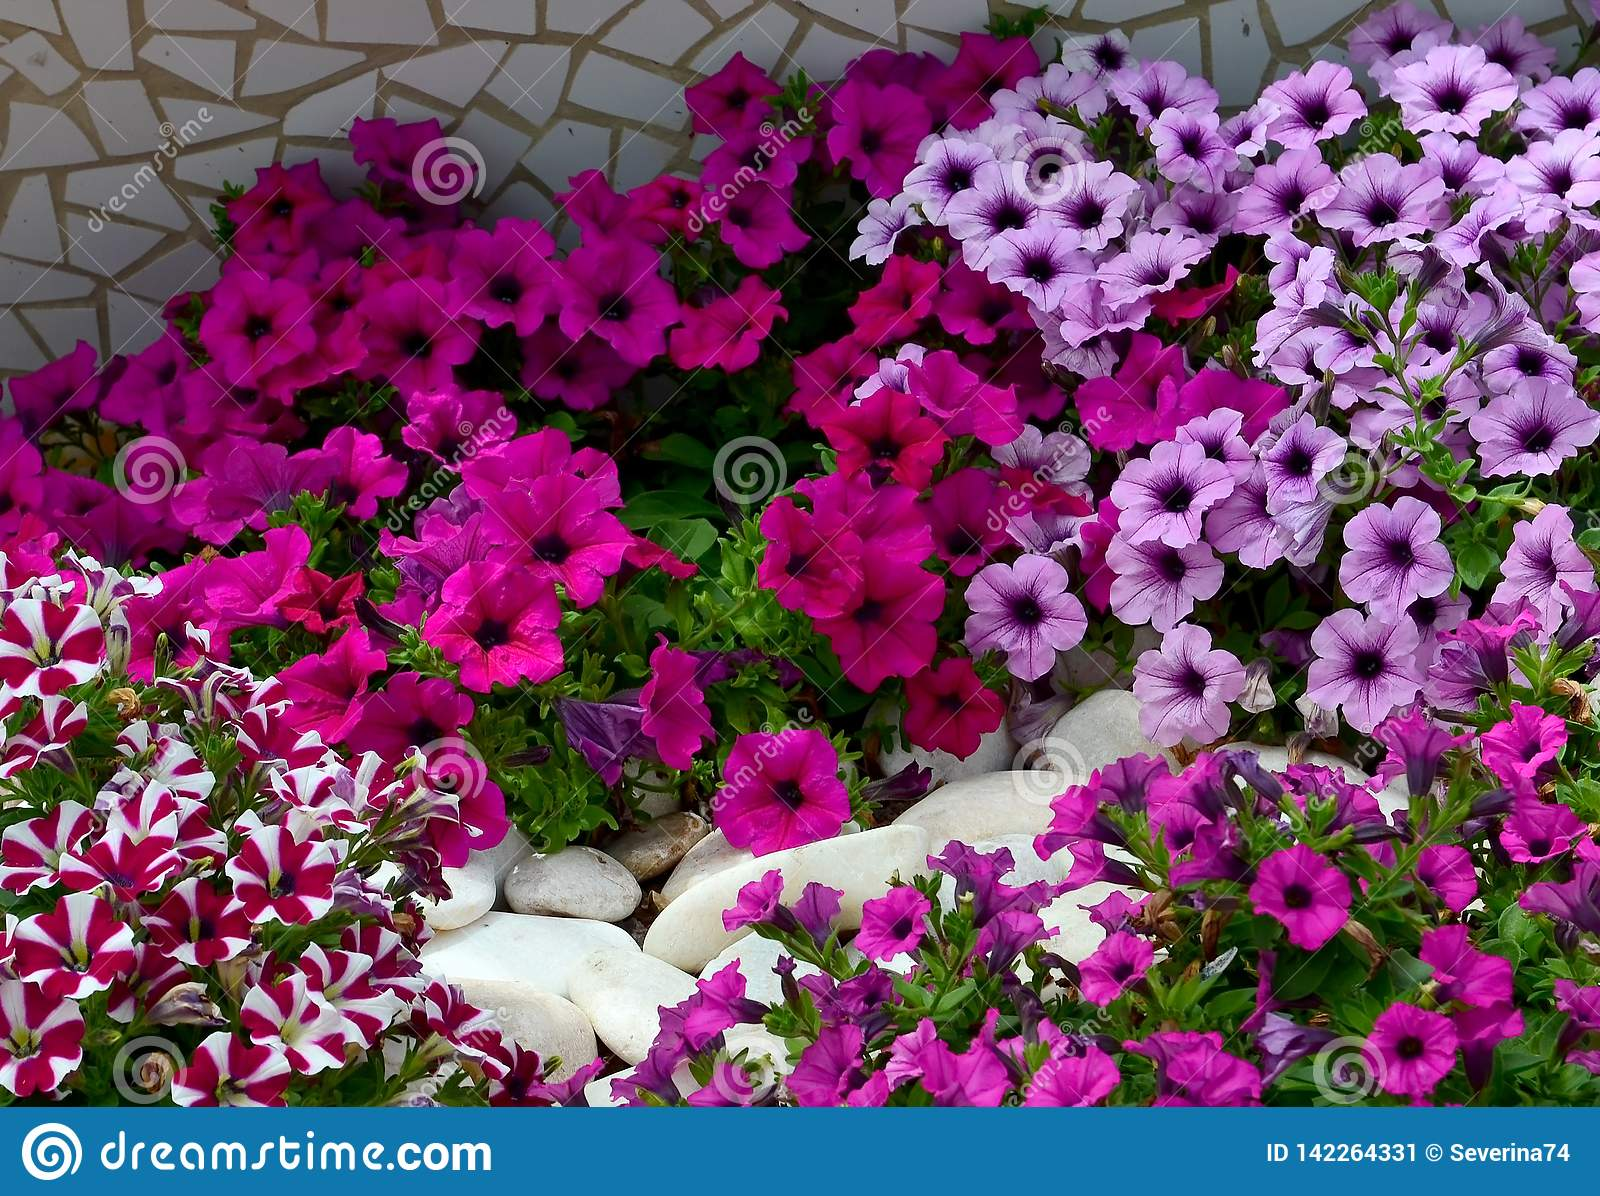 Petunia Flowers On A Flower Bed In Summer Garden Bright Colorful Petunias Floral Background Stock Image Image Of Colorful Color 142264331